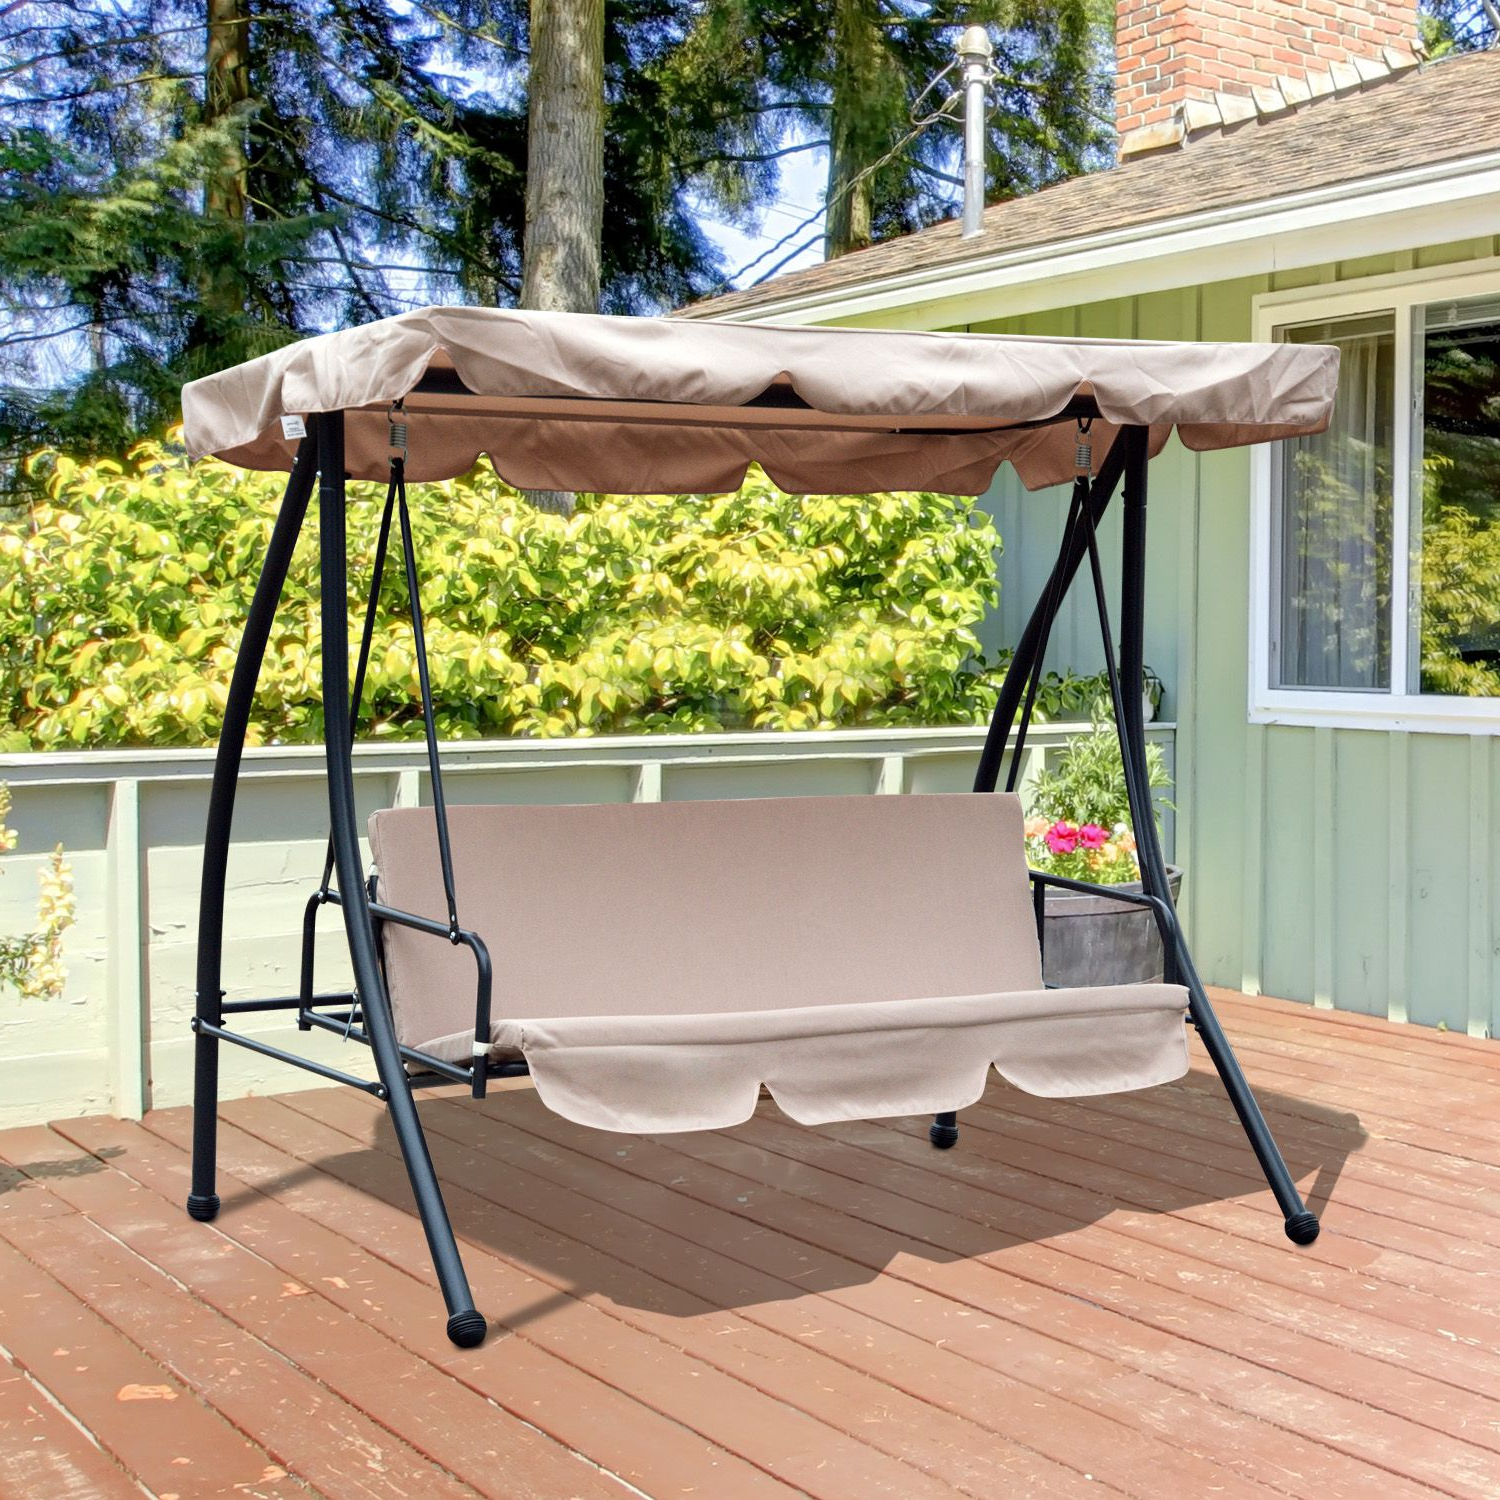 3 Seats Patio Canopy Swing Gliders Hammock Cushioned Steel Frame Within Well Known Outsunny Convertible Patio Swing Chair 3 Person Hammock Cushioned Portable  Outdoor With Tilt Canopy Beige (Gallery 28 of 30)